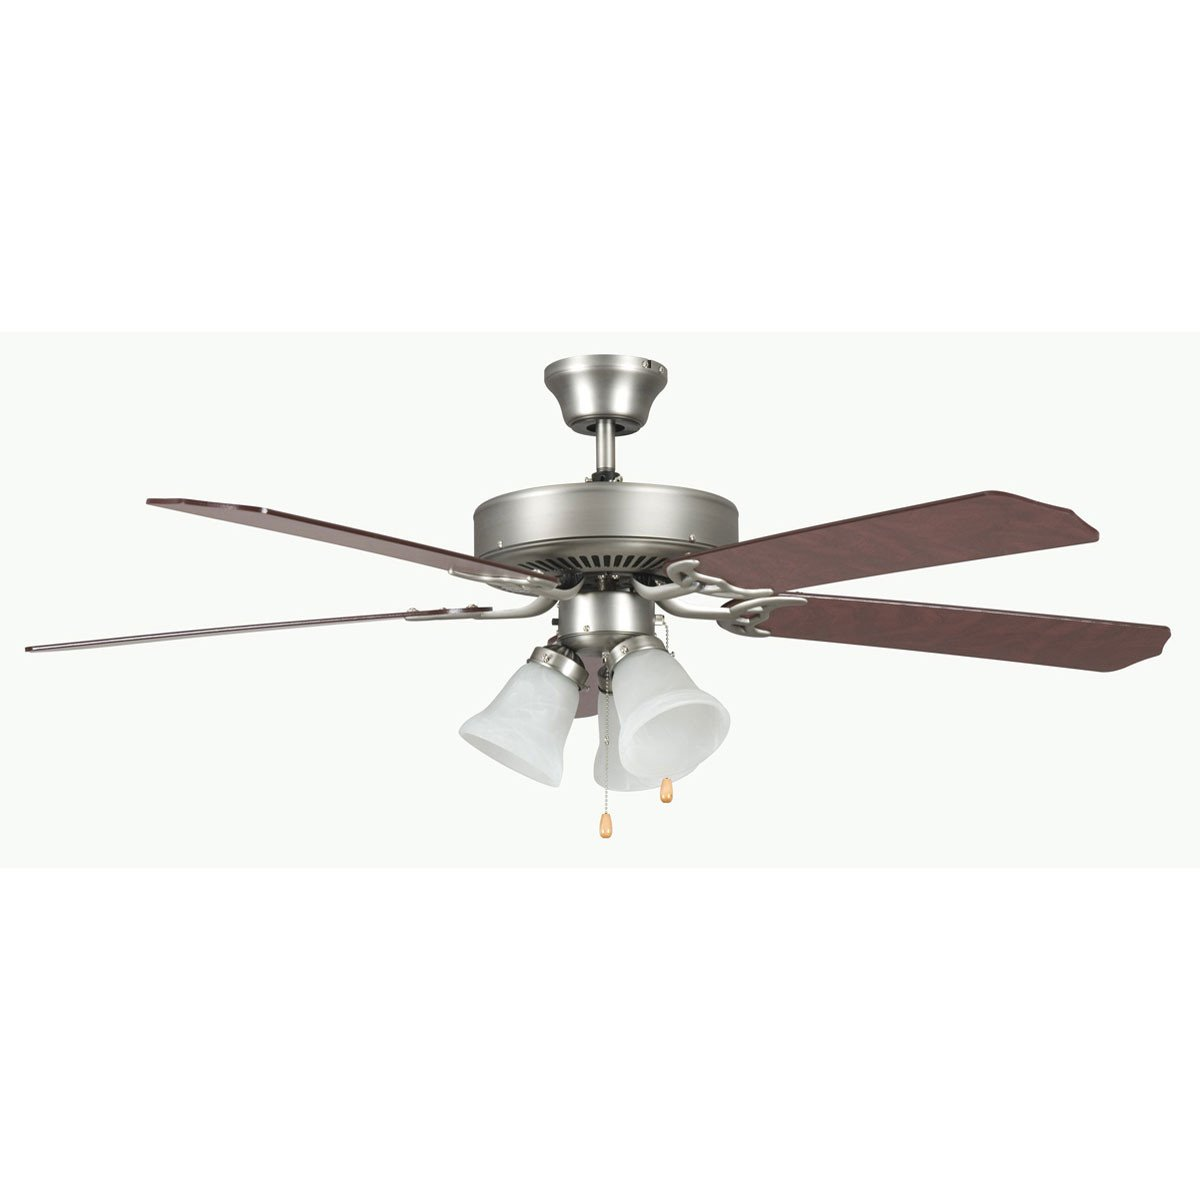 "Concord Fans 52"" Heritage Home Elegant Satin Nickel Ceiling Fan with 3 Lights"